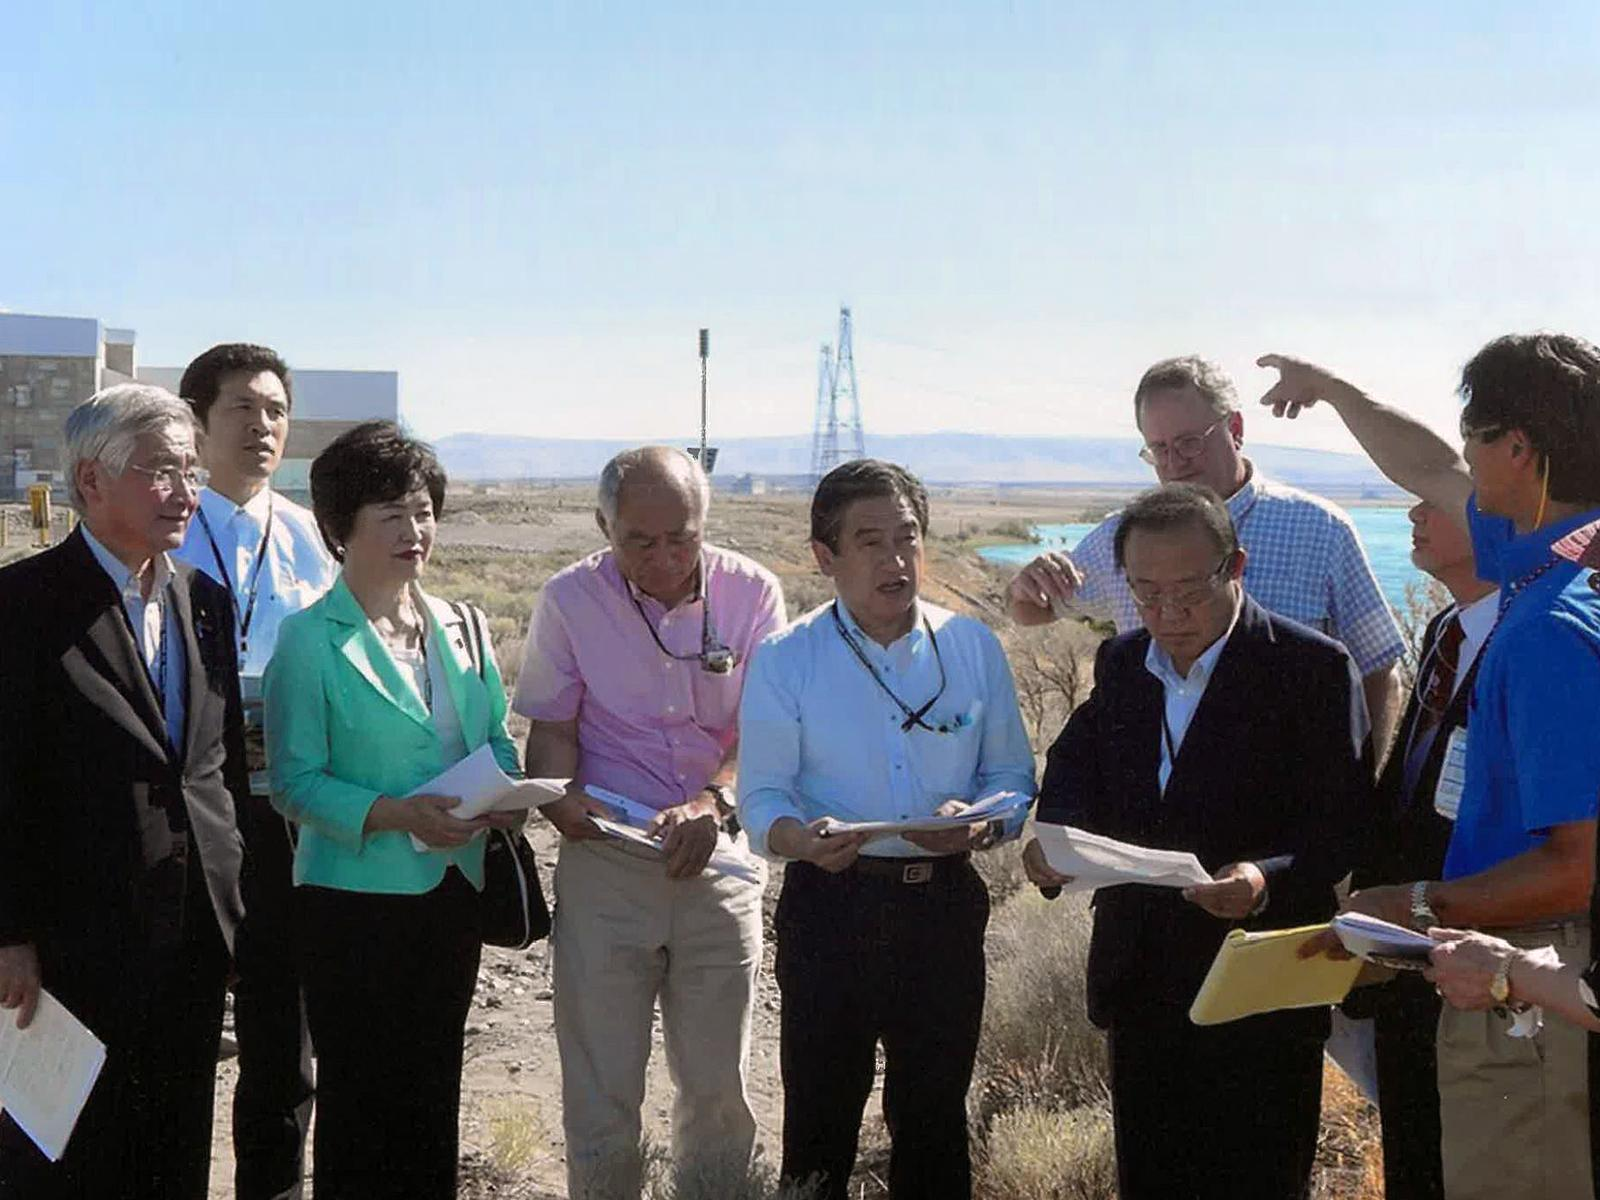 Japanese visitors to Hanford